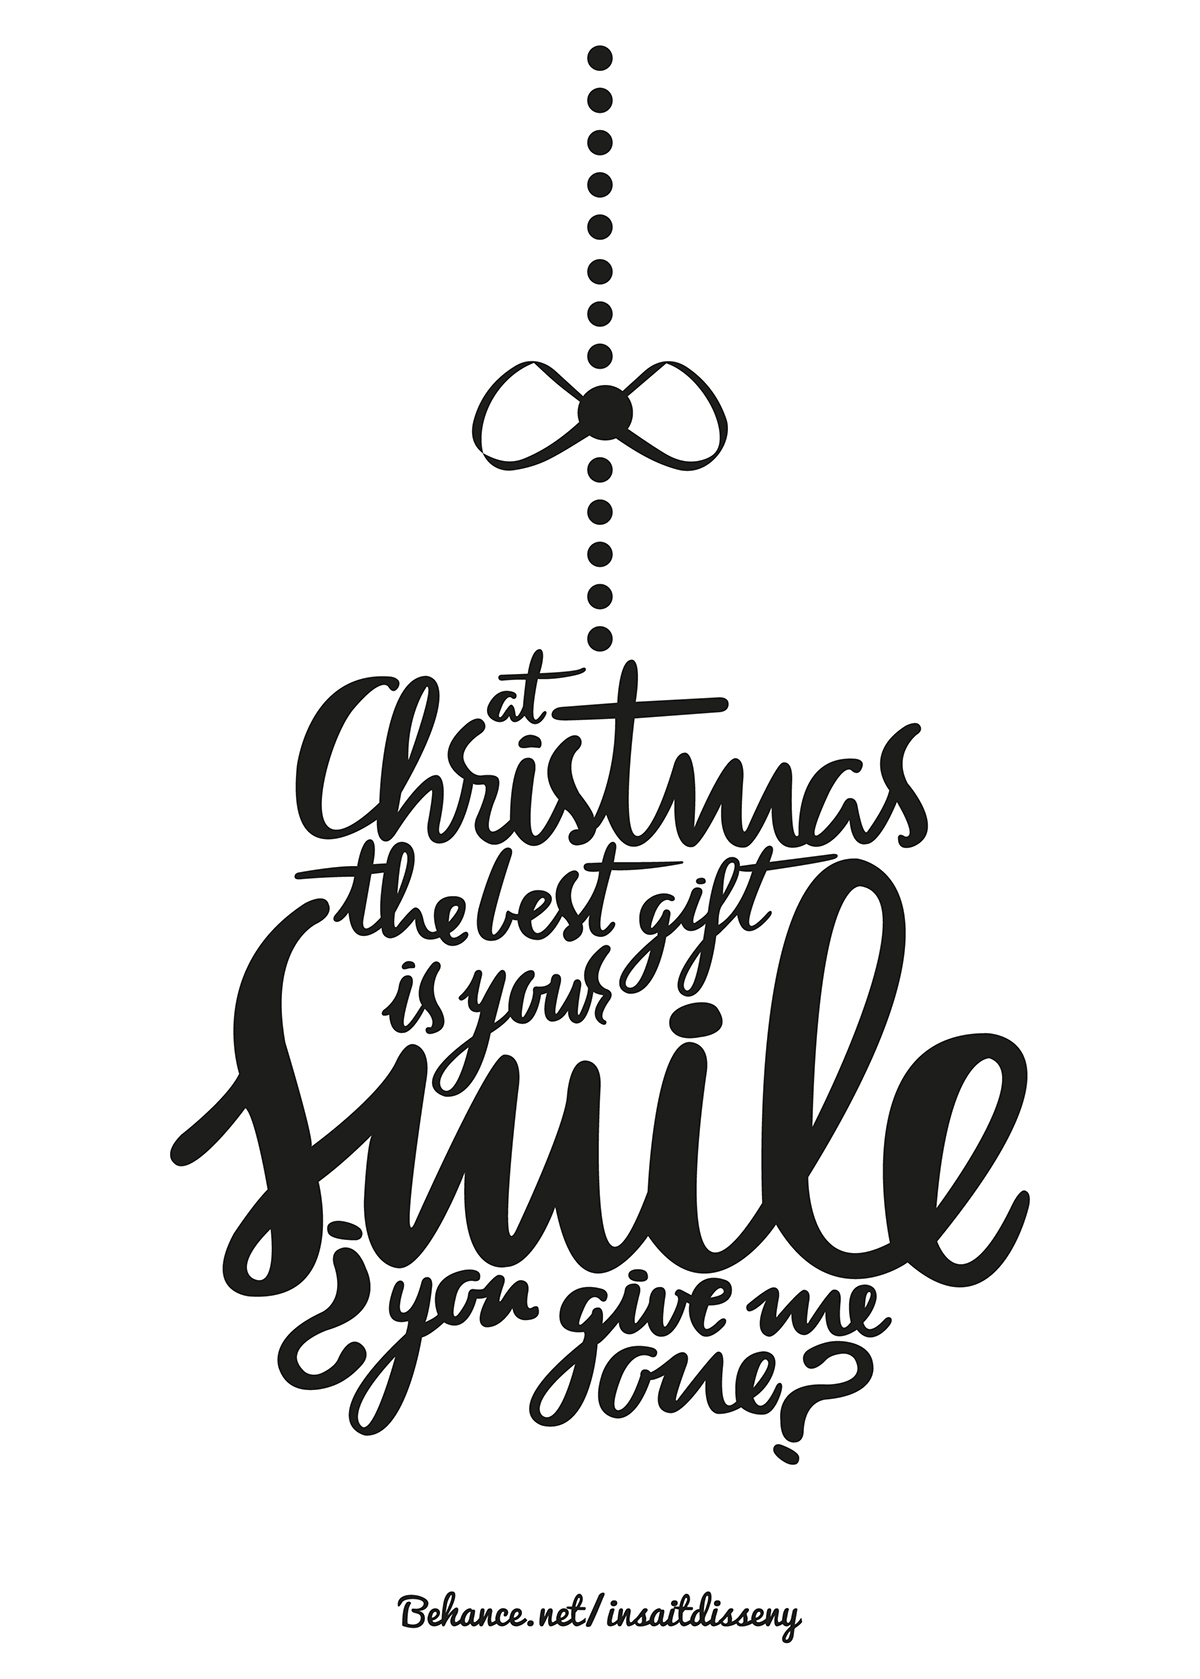 The best gift is your smile on Behance